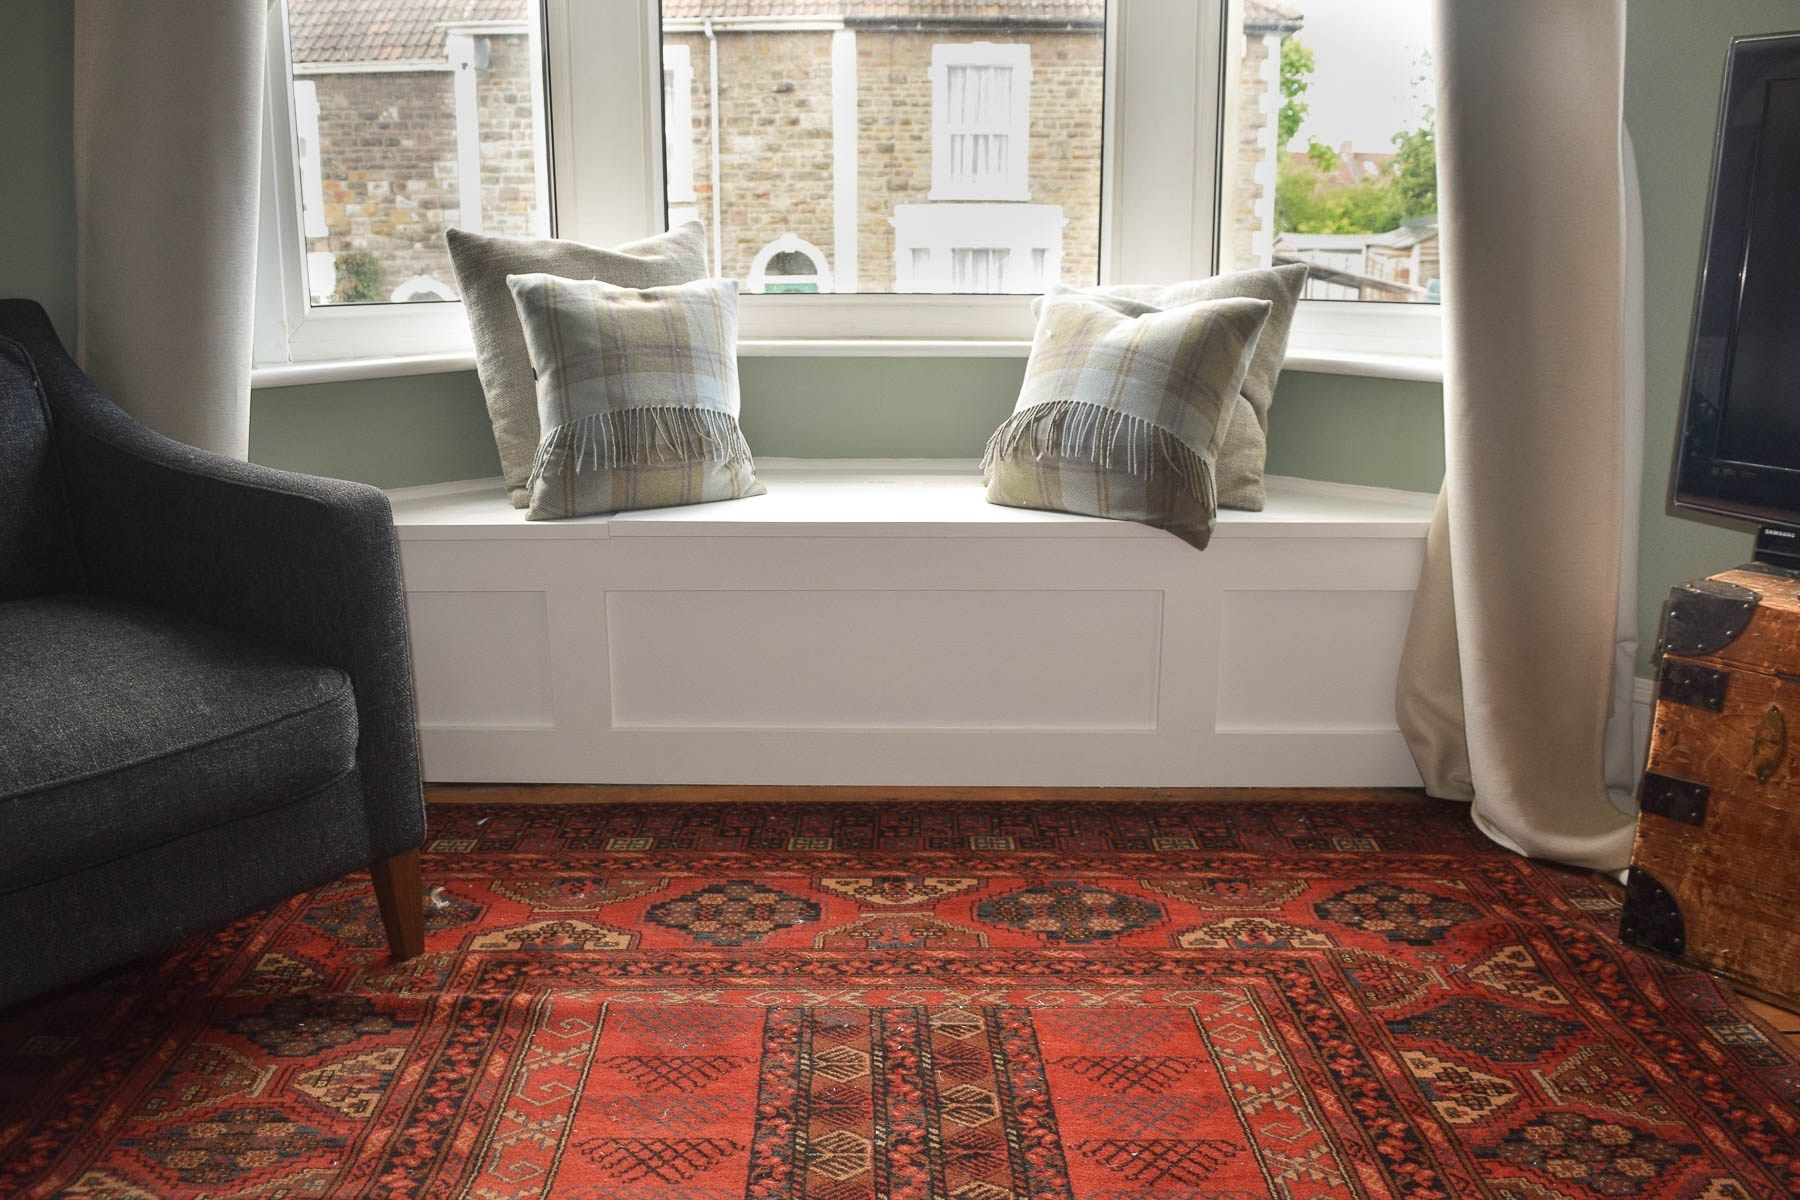 How To Build A Victorian Bay Window Seat With Storage Window